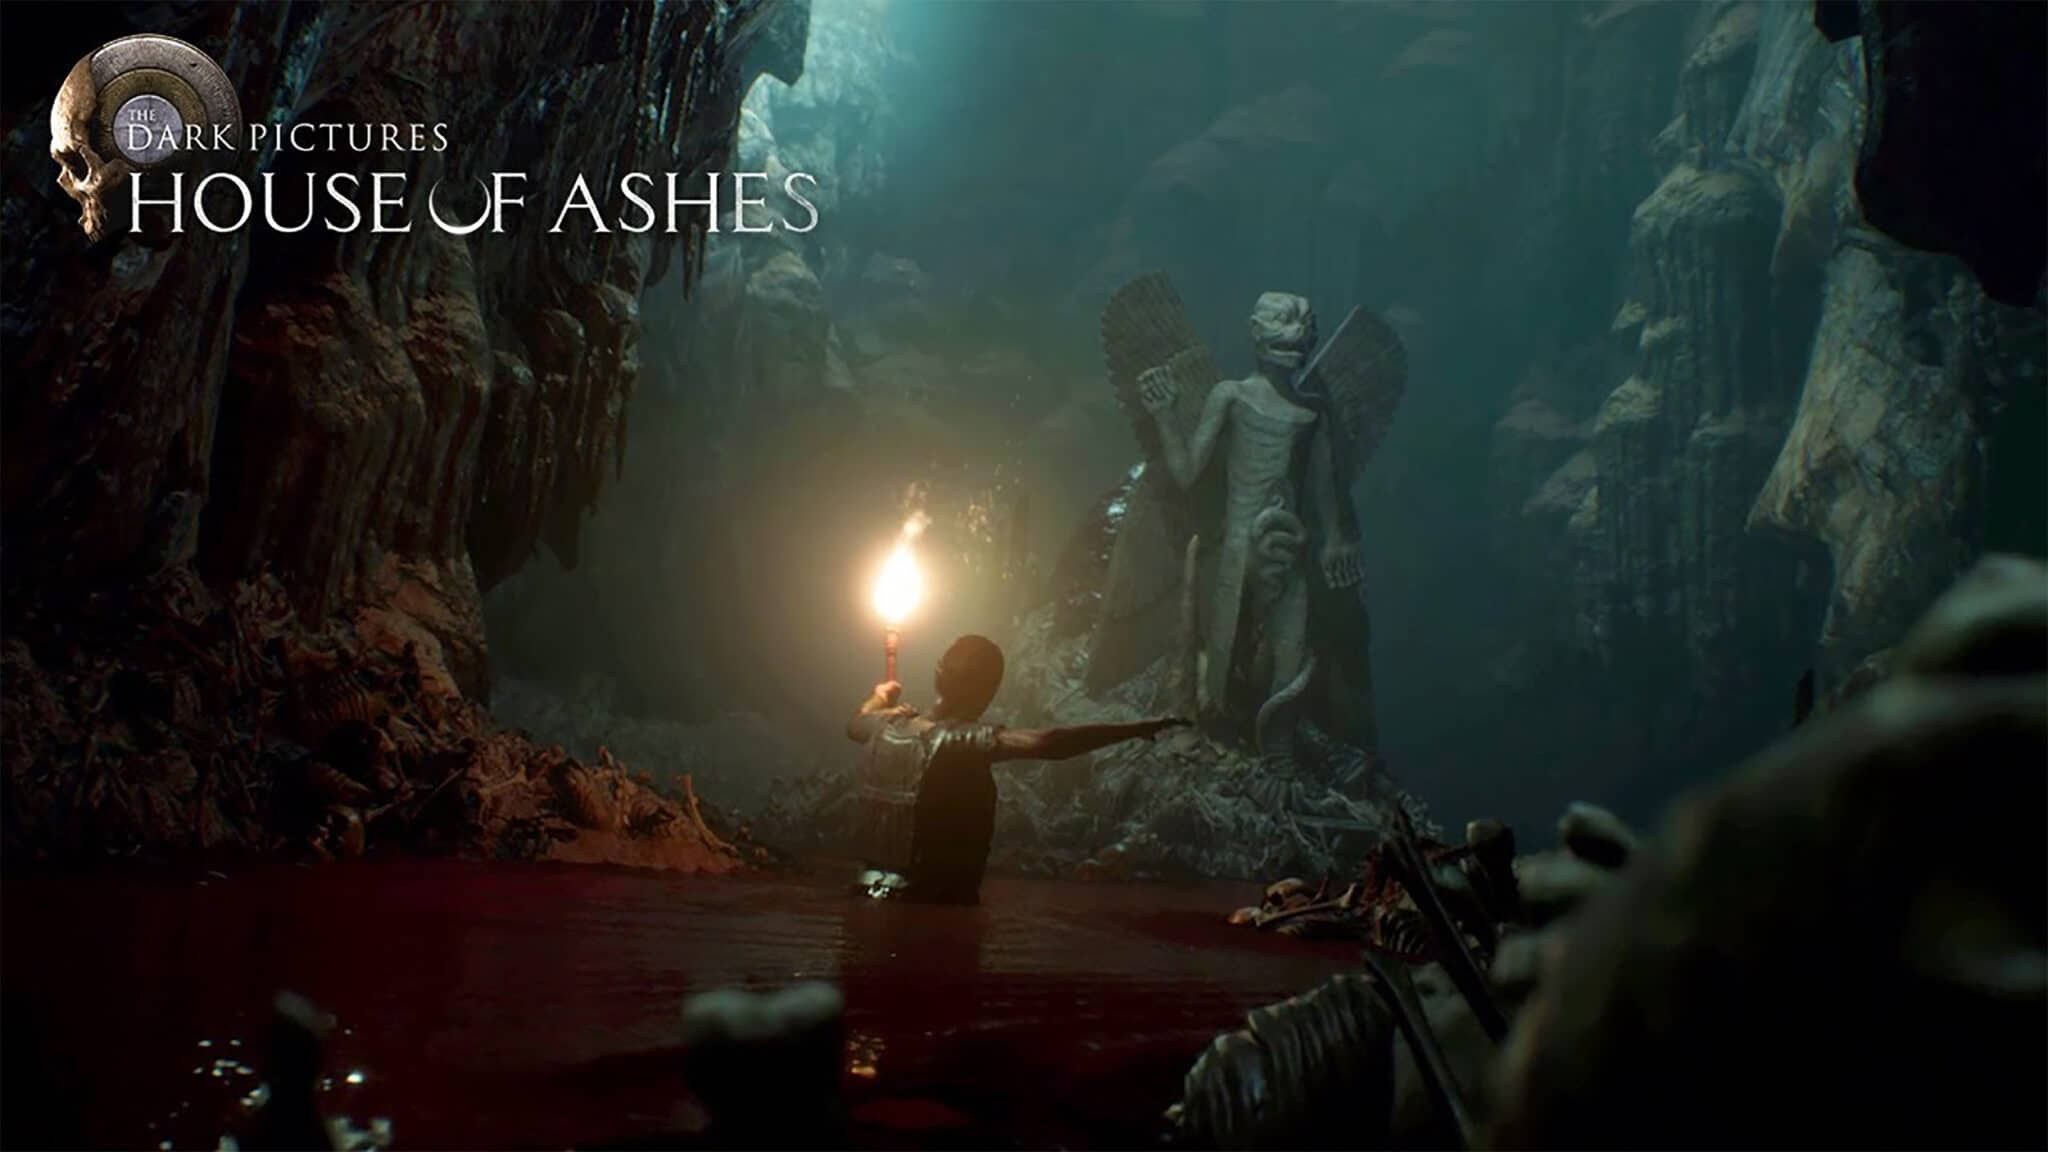 Horror Comes to Iraq in The Dark Pictures: House of Ashes Trailer